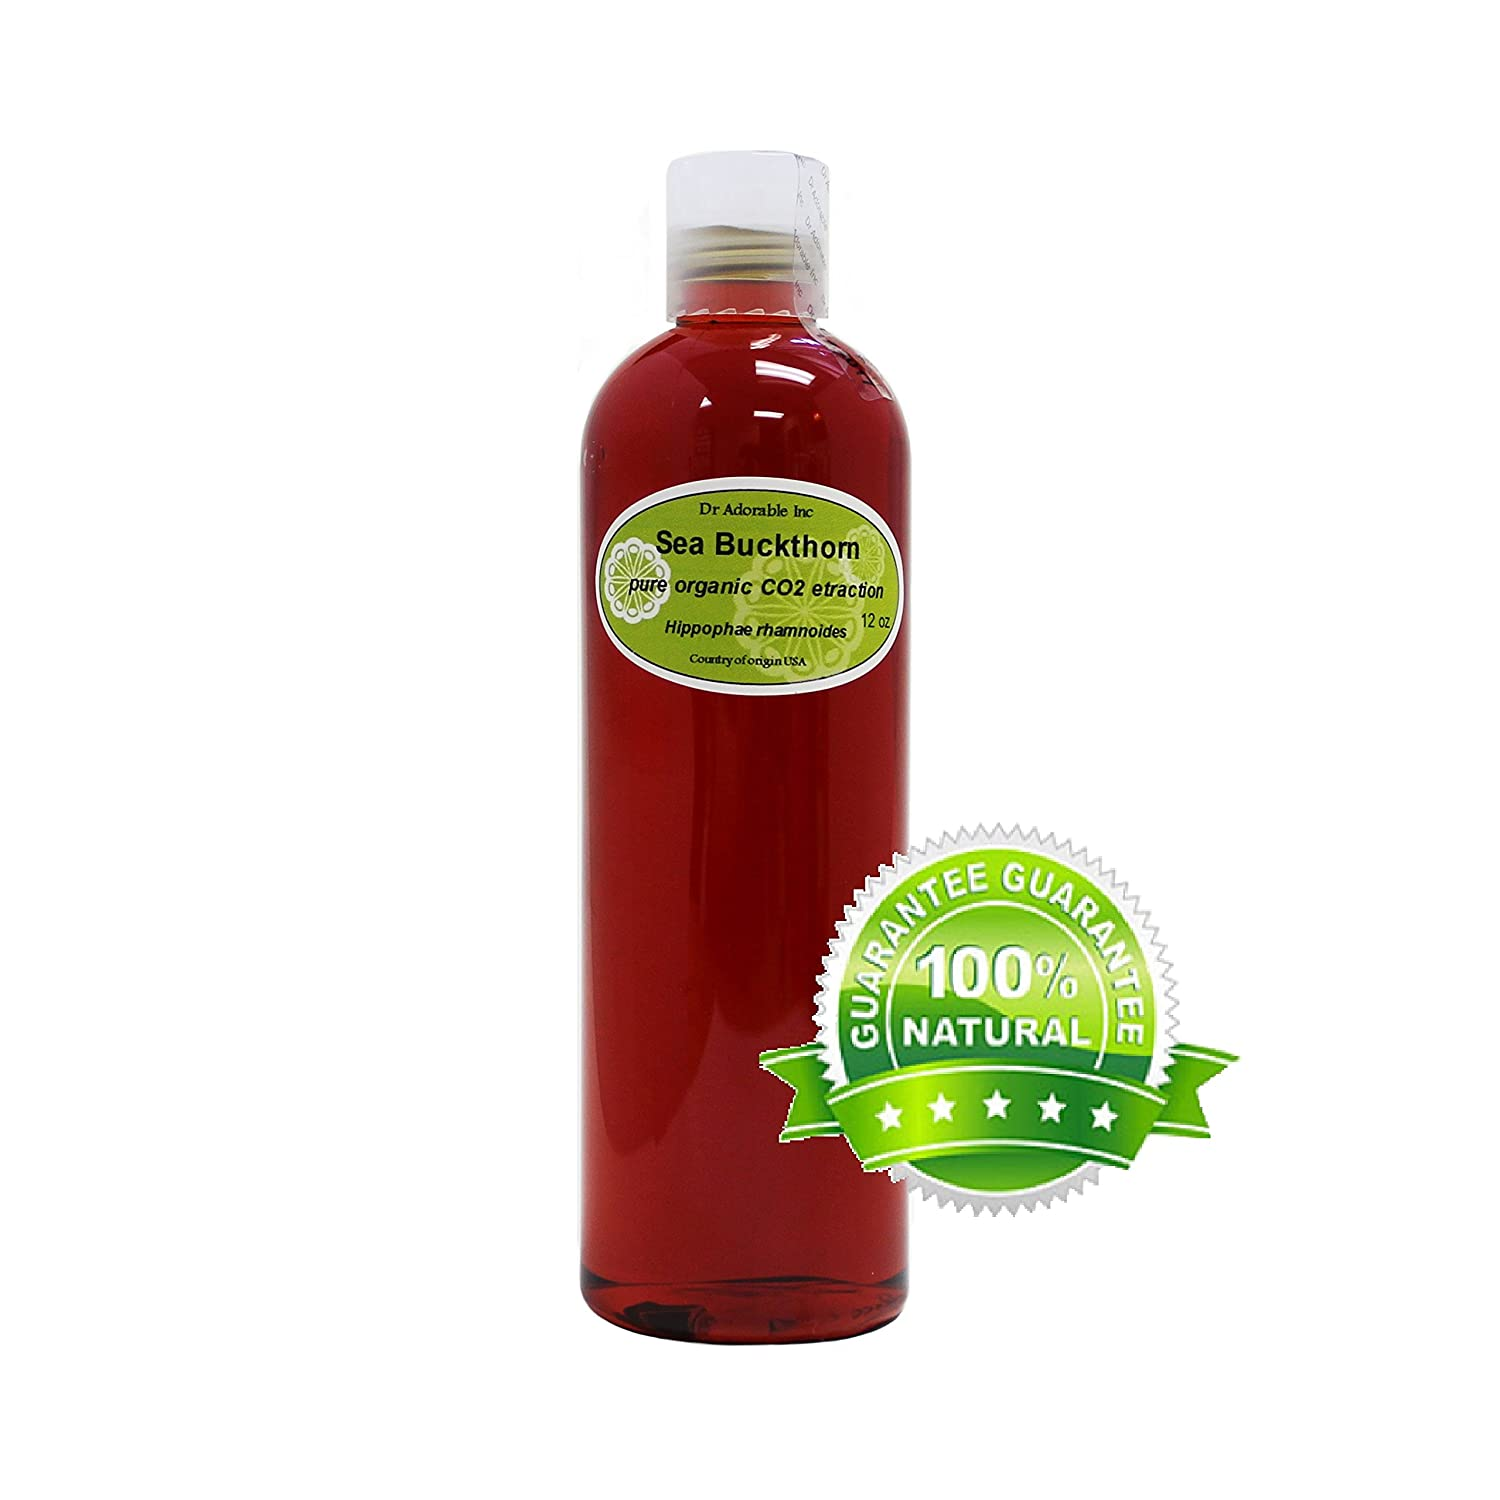 Fresno Mall Sea Buckthorn Carrier Oil Co2 Pure Limited price sale 12 Extracted Oz 100%